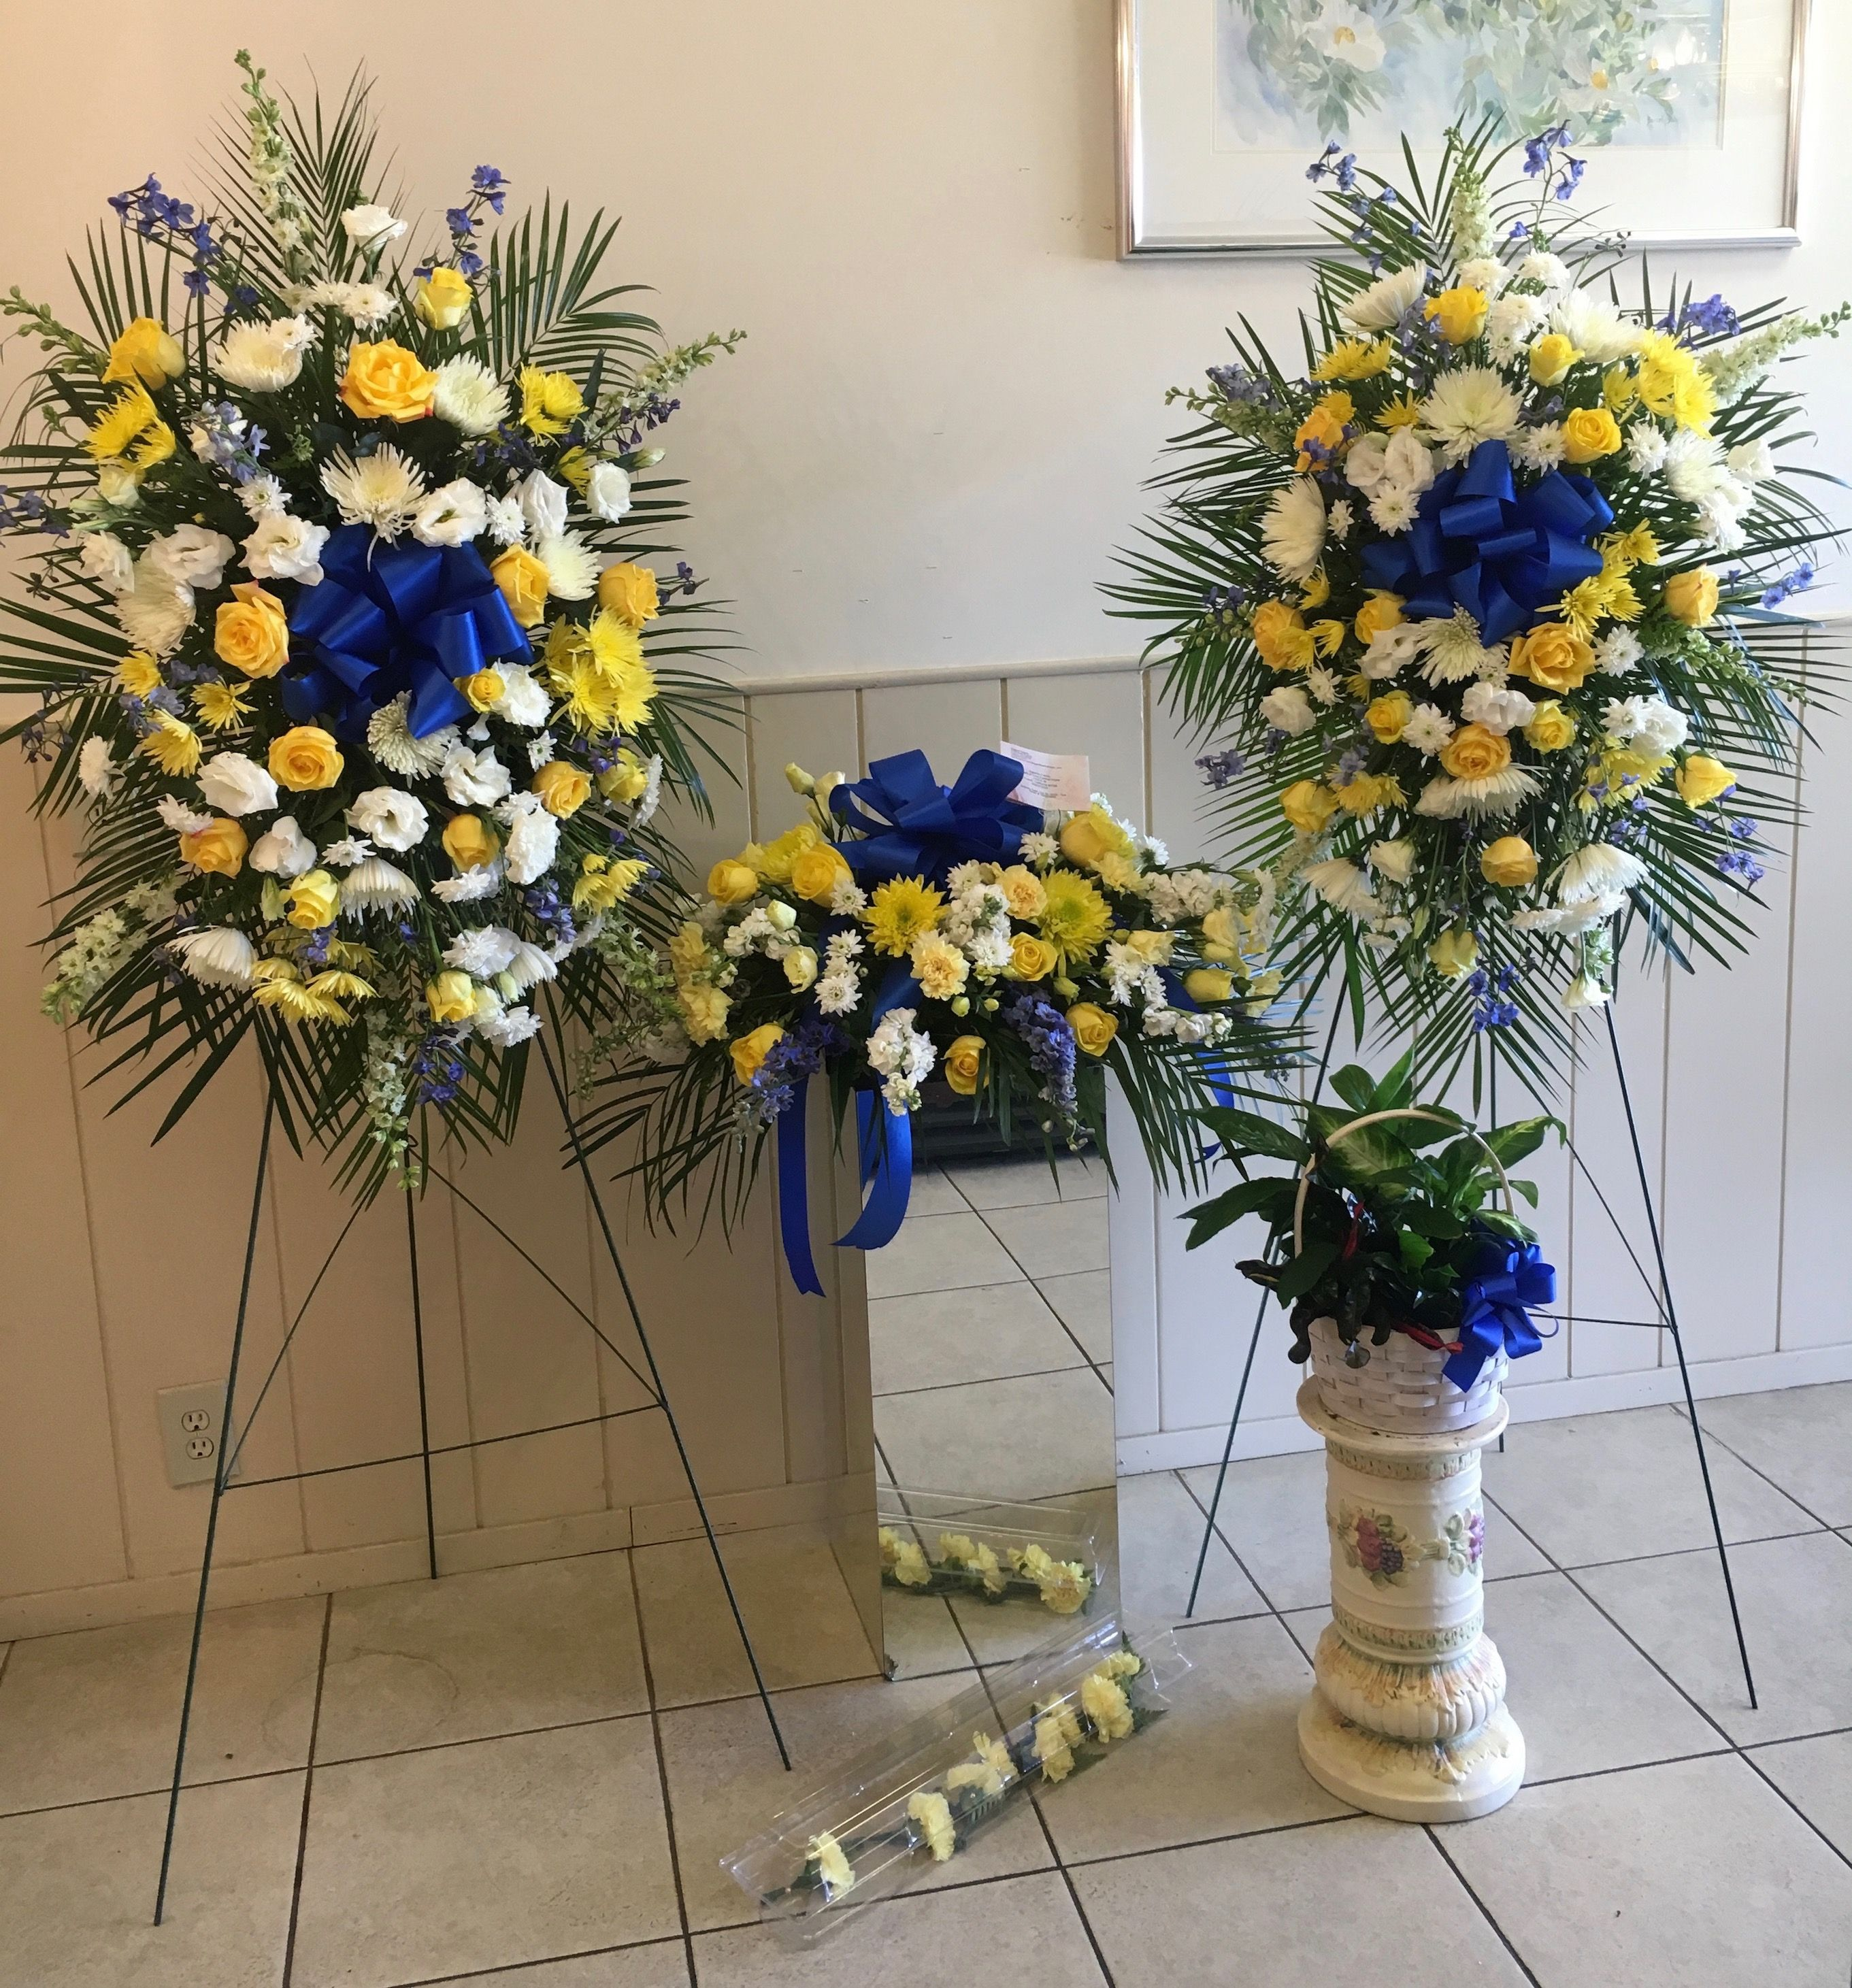 Funerals elegant flowers fresno florists flowers in fresno ca includes 1 casket spray 1 standing spray medium live plant your choice of another standing spray open wreath open heart or cross izmirmasajfo